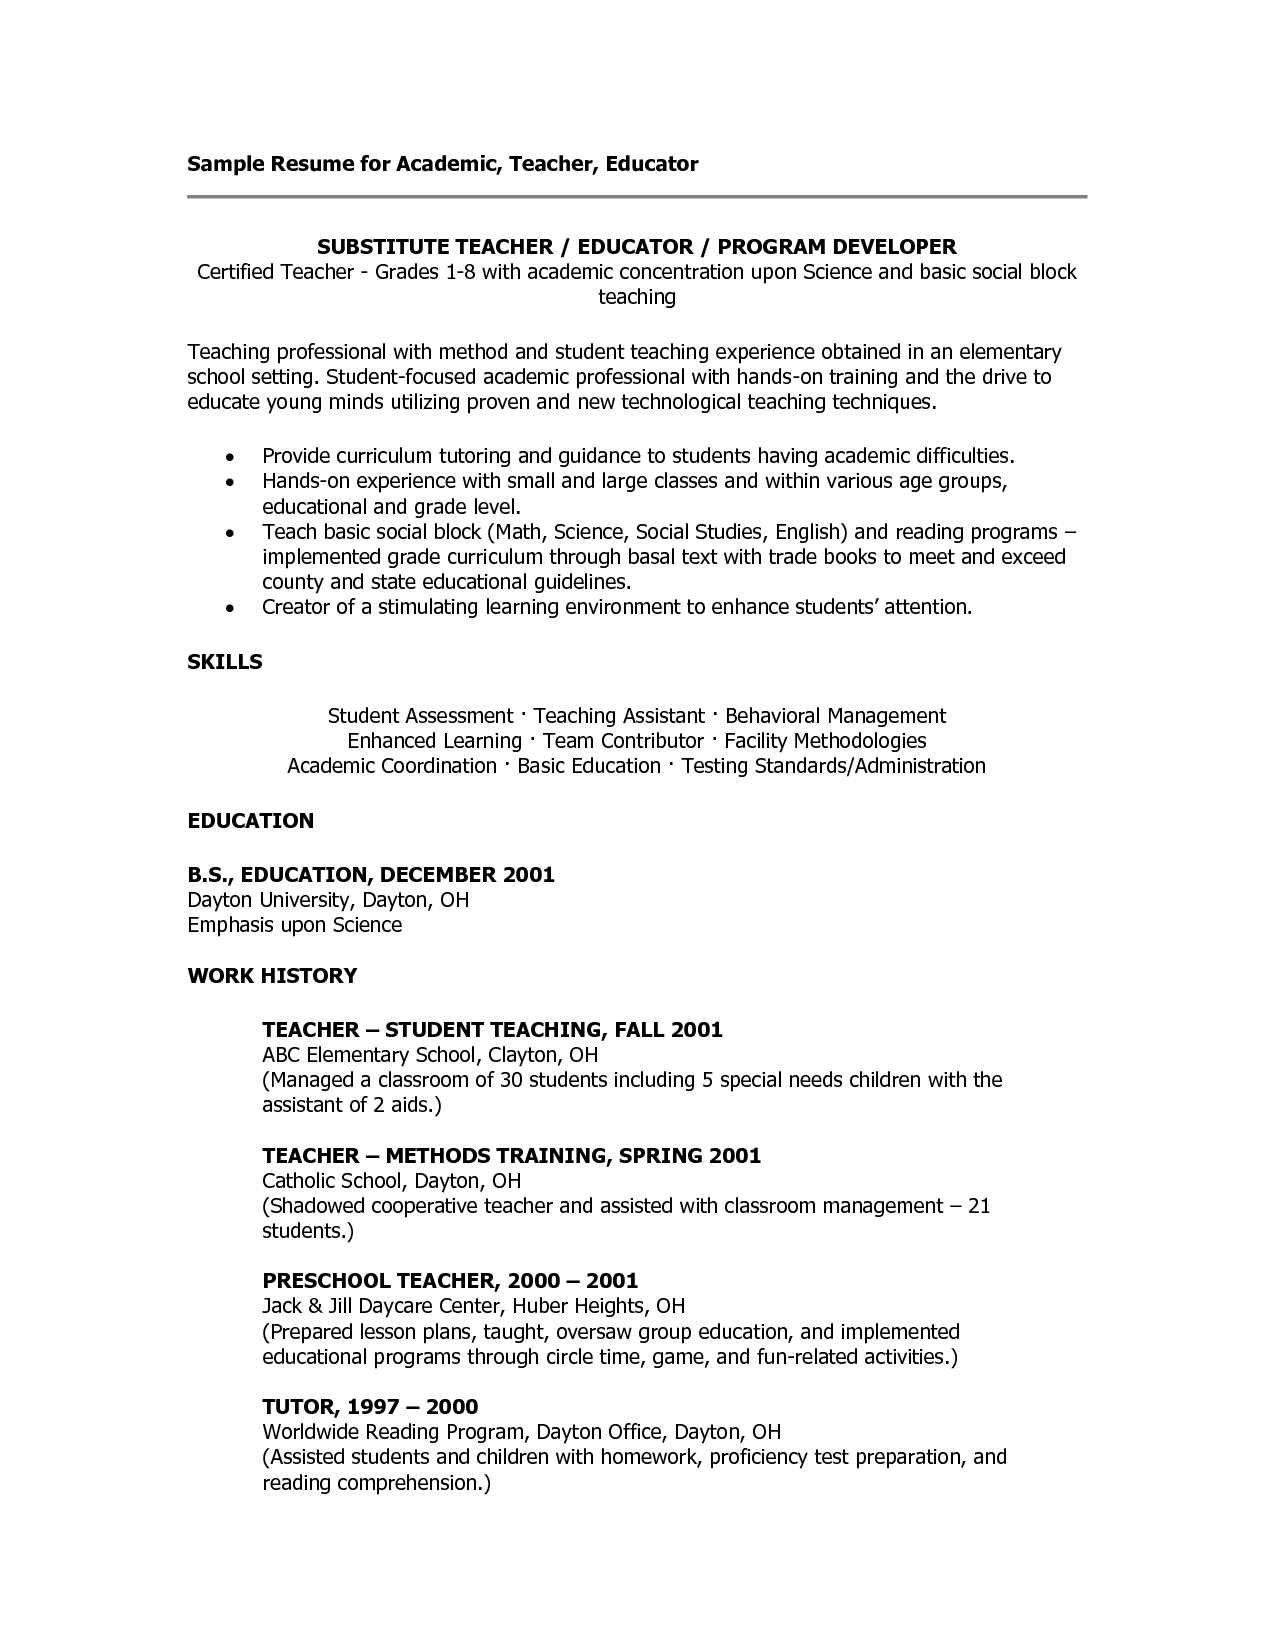 Etonnant Sample Teacher Resumes | Substitute Teacher Resume